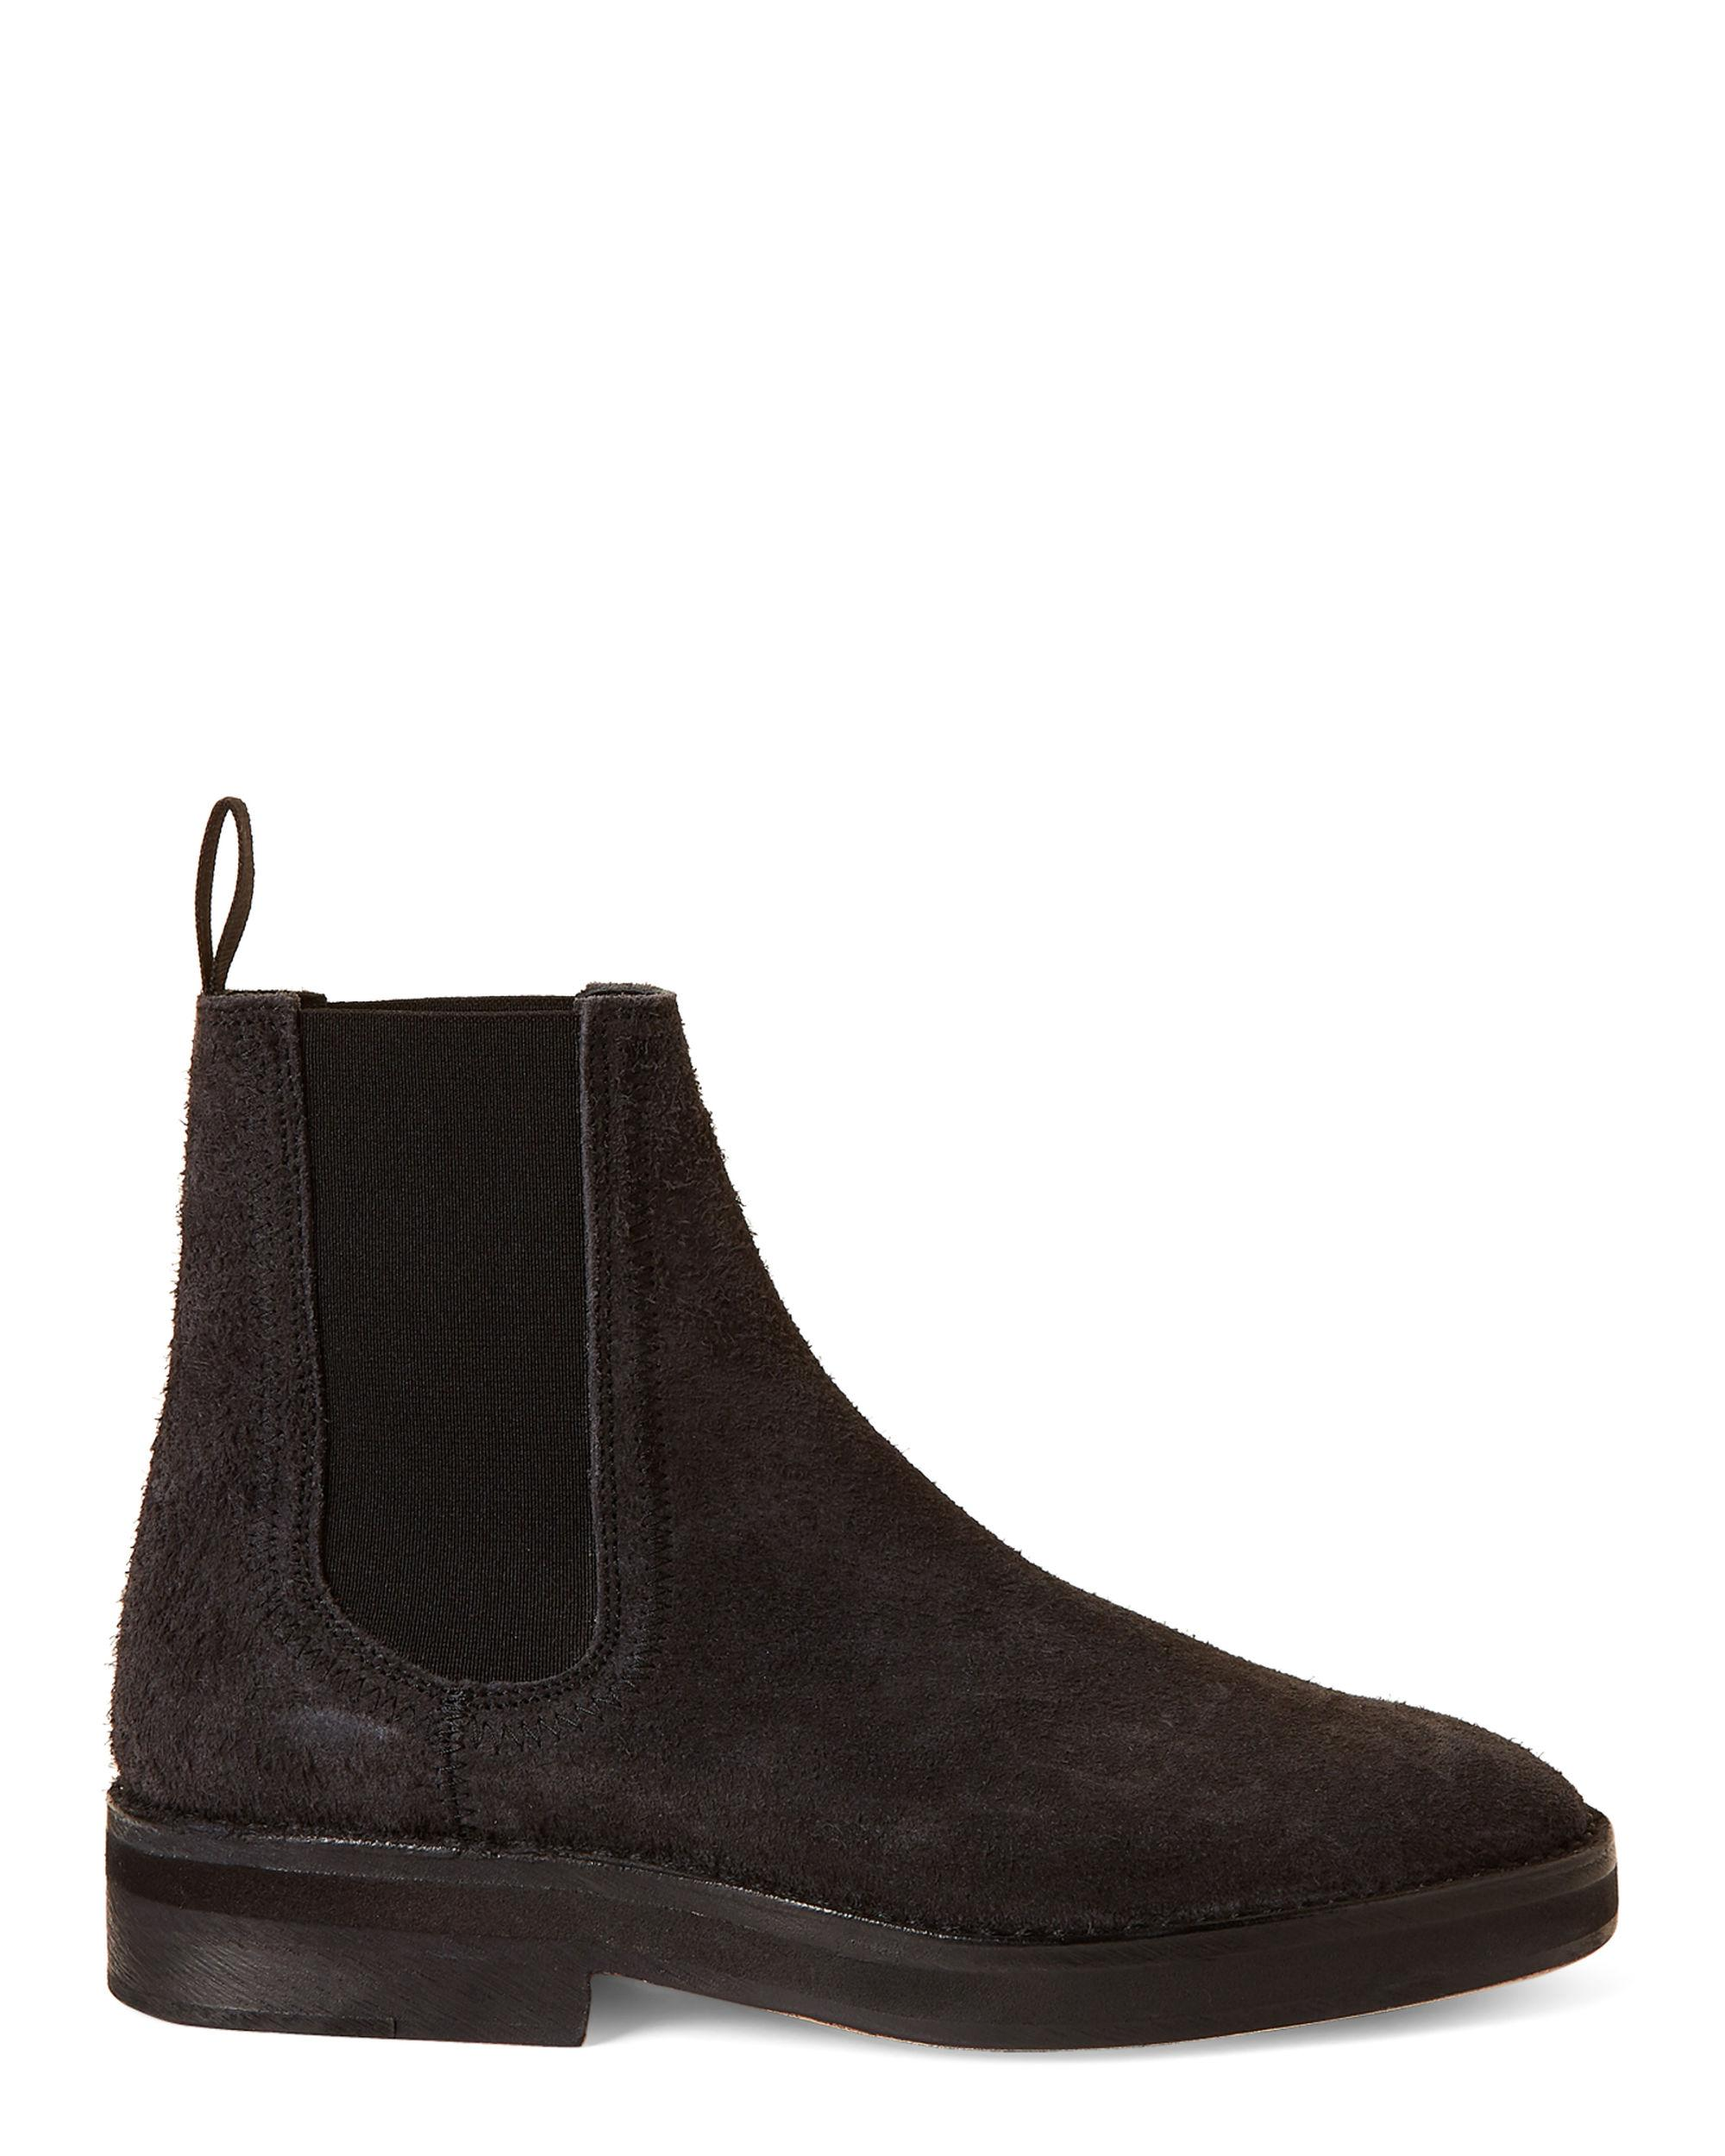 32788a0c5 Lyst - Yeezy Graphite Season 6 Suede Chelsea Boots in Brown for Men